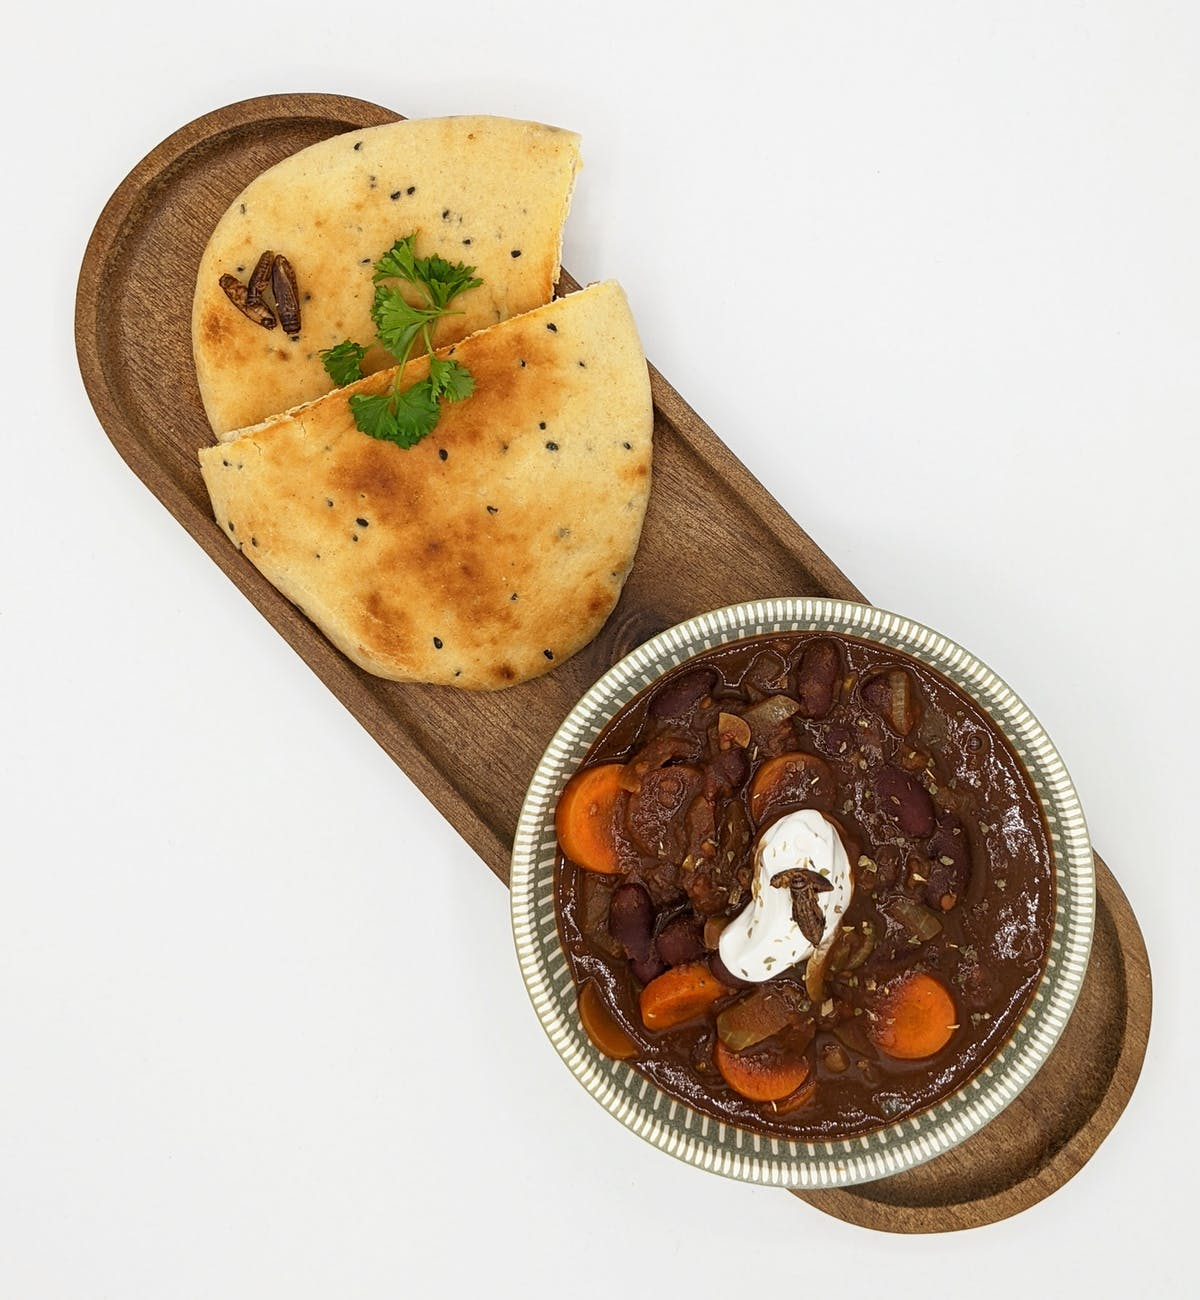 Serve your chili con carne with fresh naan bread for a change!